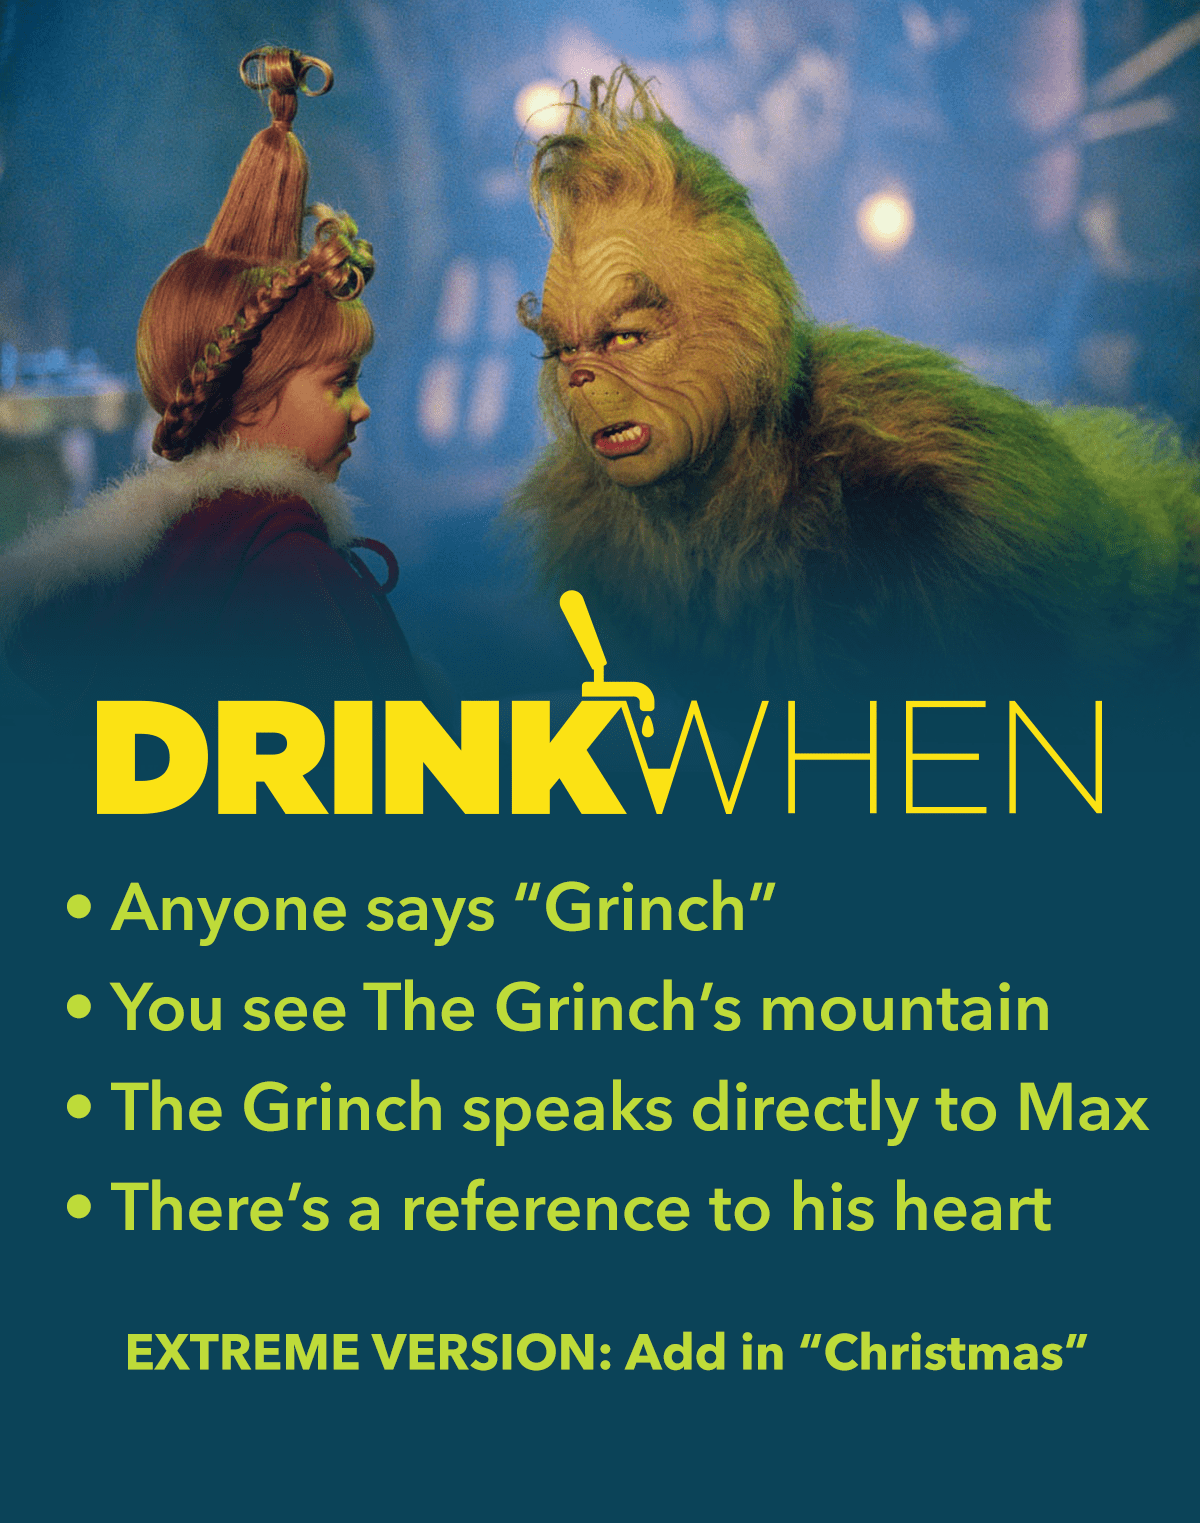 How The Grinch Stole Christmas 2020 Times Dont be a sober Grinch! Play this How the Grinch Stole Christmas